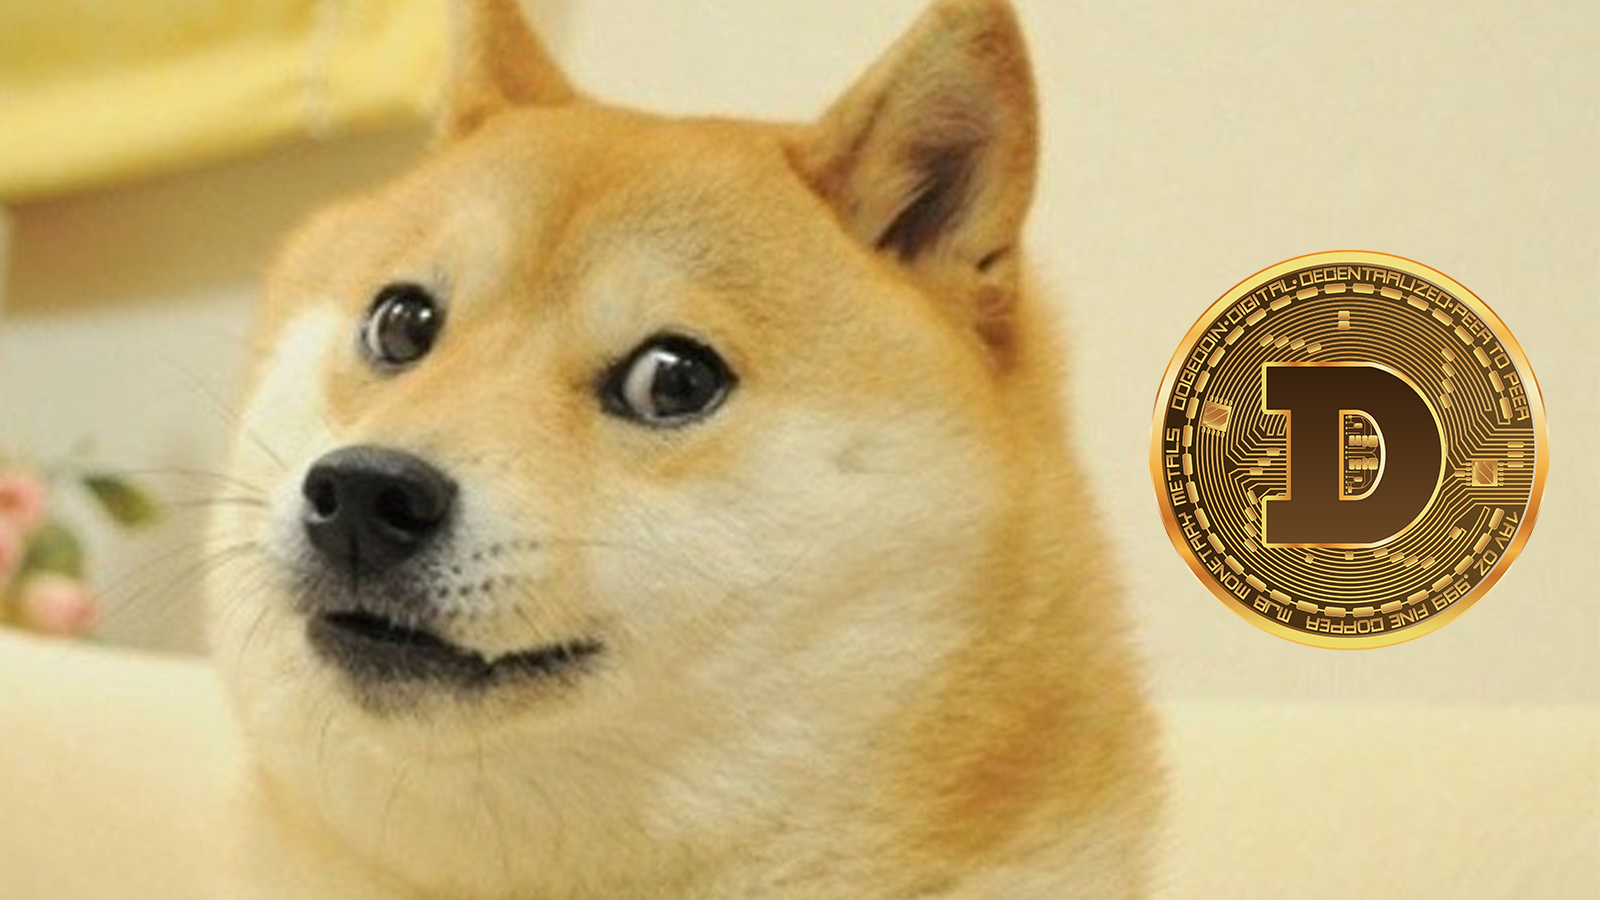 Doge meme with the Dogecoin